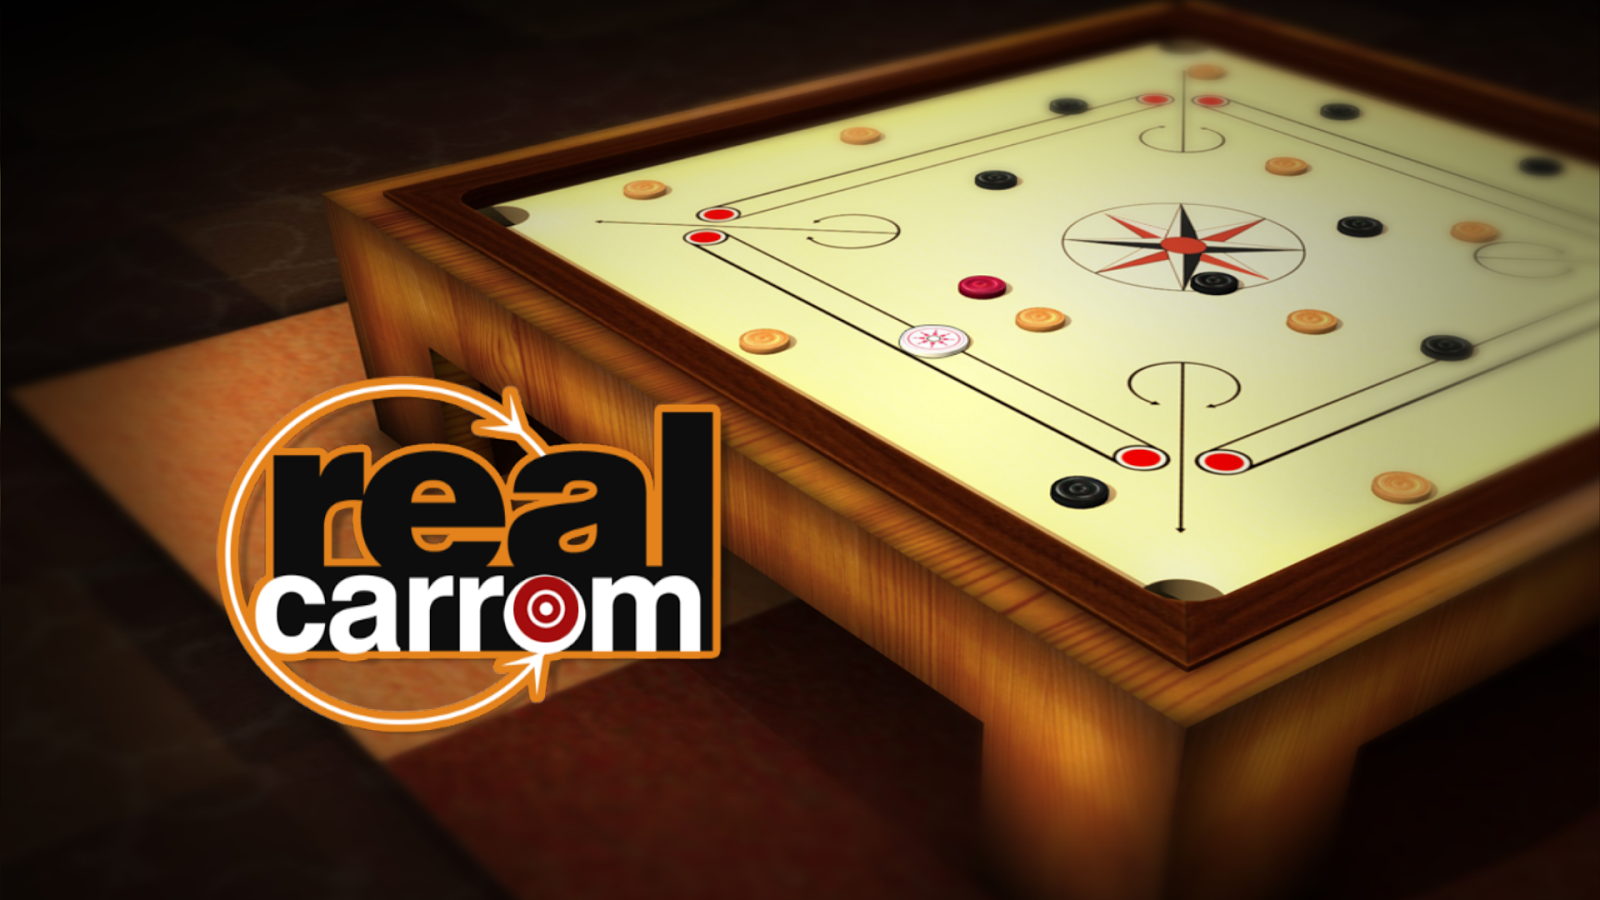 Real Carrom 3D : Multiplayer- screenshot